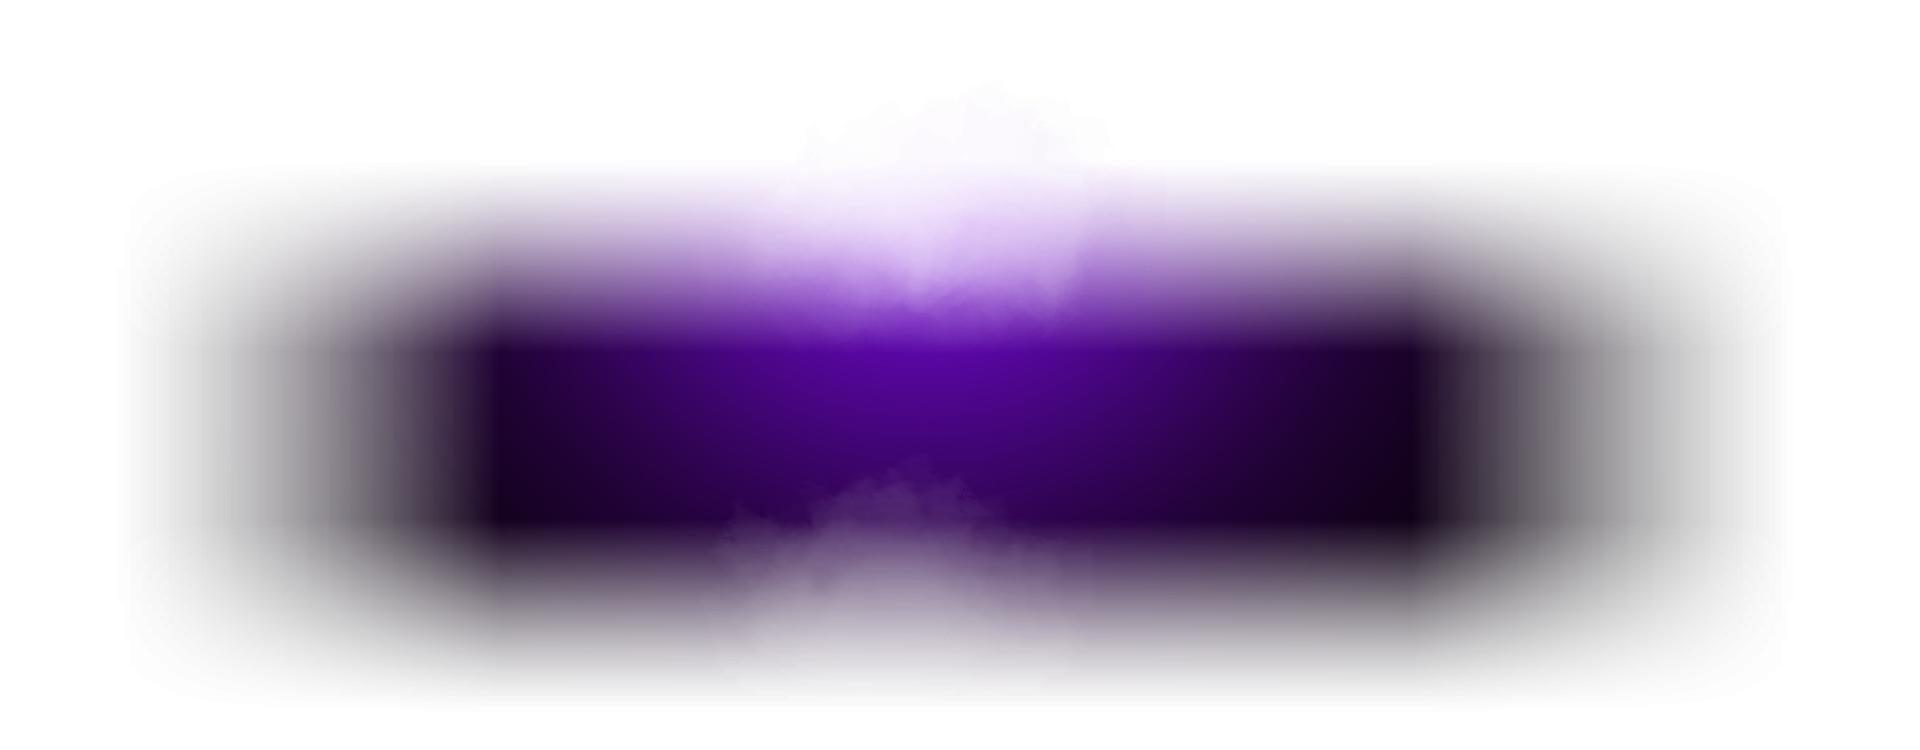 AGON_PRO_4_FV_FW_IPS_BACKGROUND.png